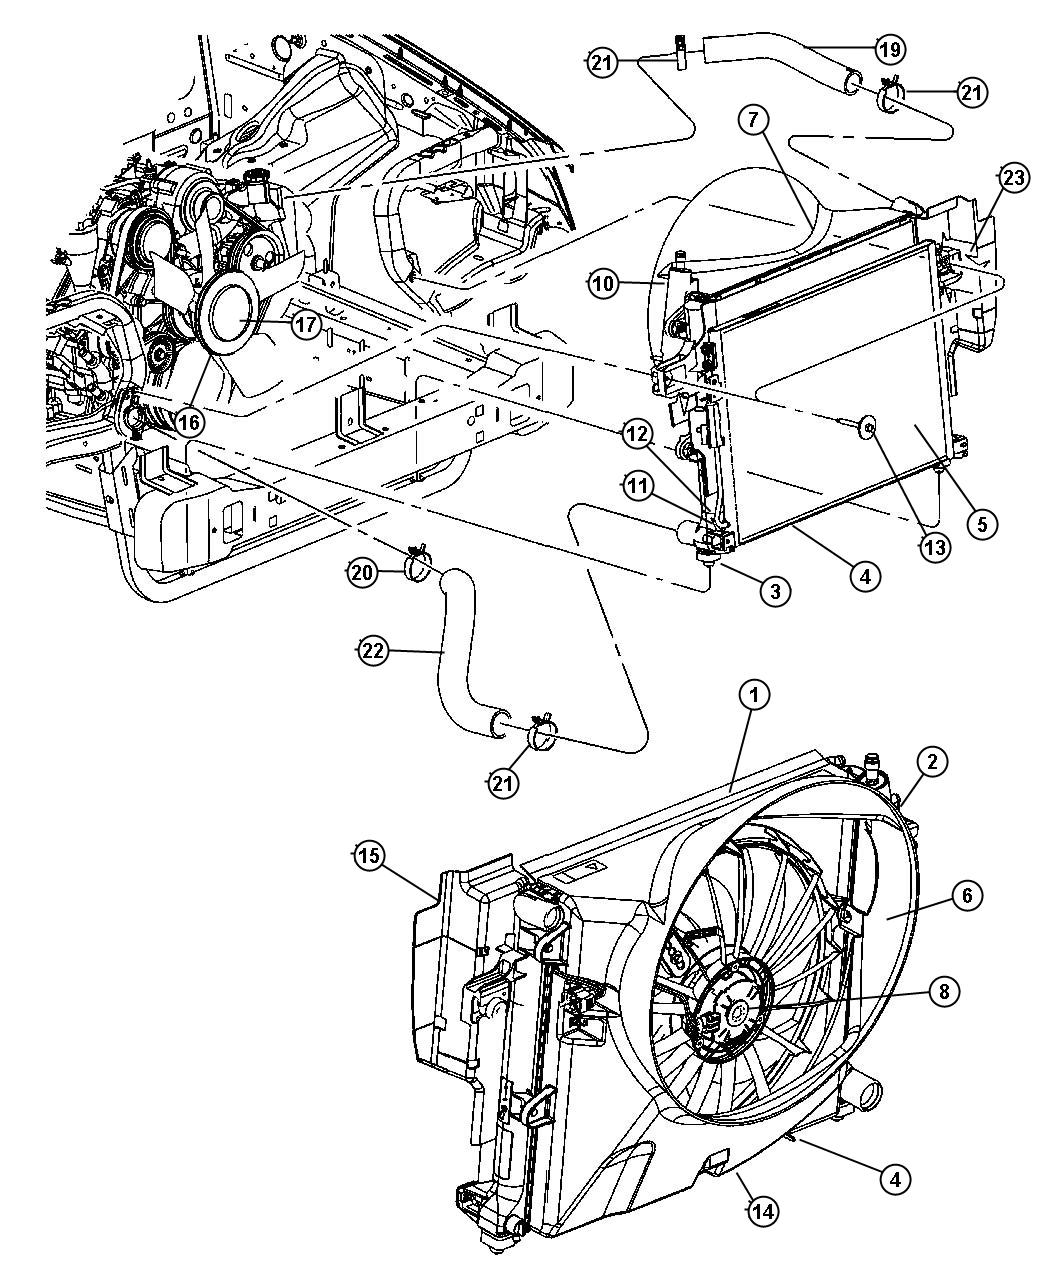 Diagram Radiator and Related Parts 4.7L [4.7L V8 MPI Engine]. for your 2008 Jeep